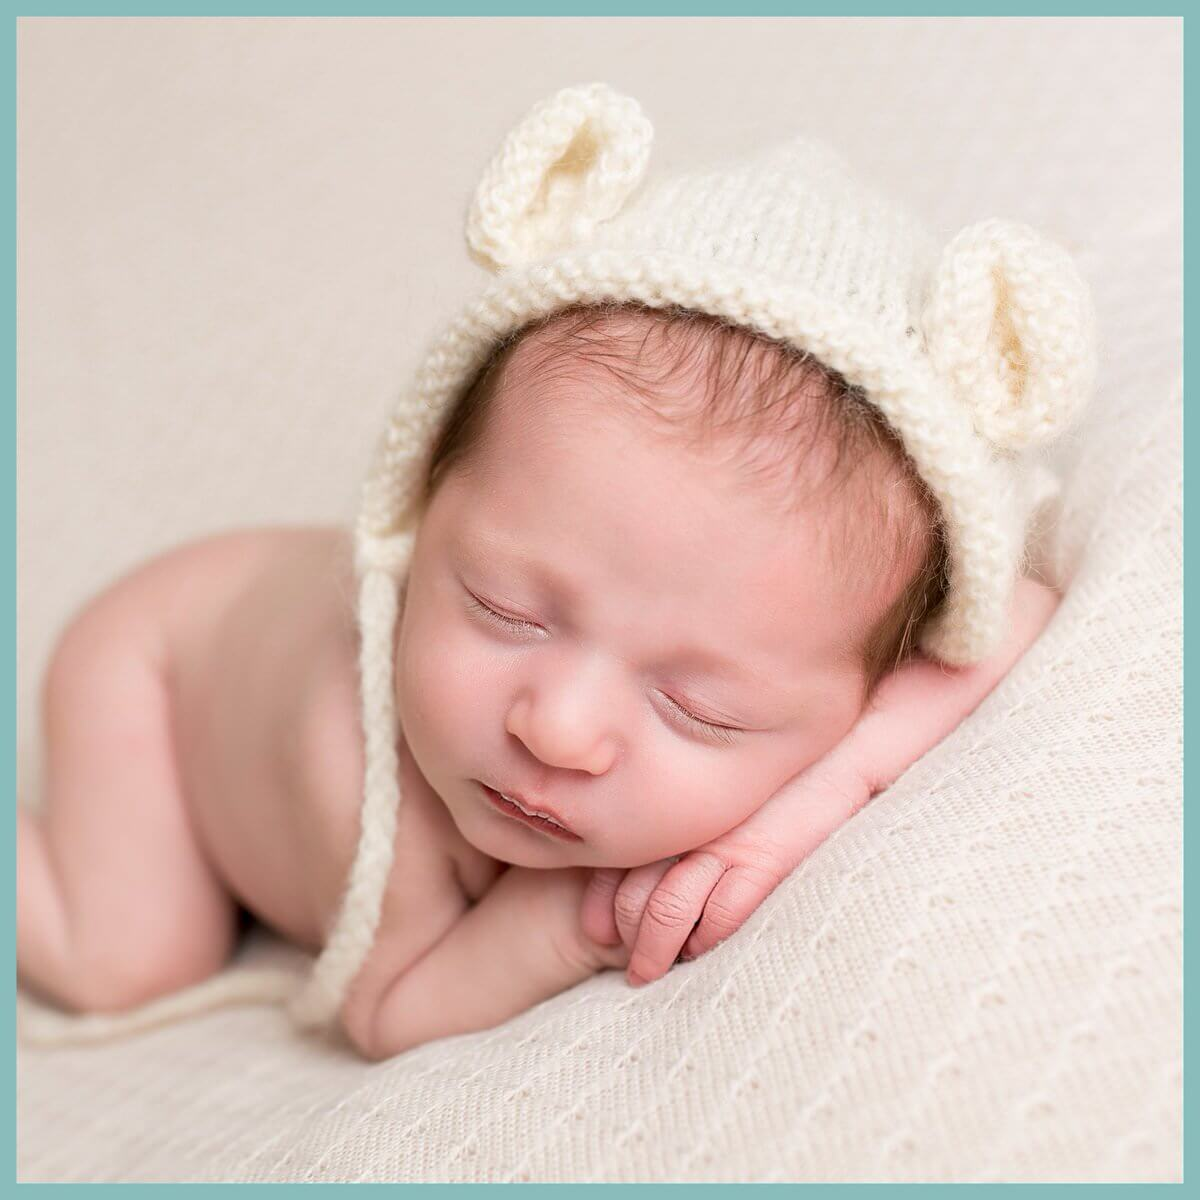 Newborn baby posed with hands under chin, wearing a cream teddy bear hat